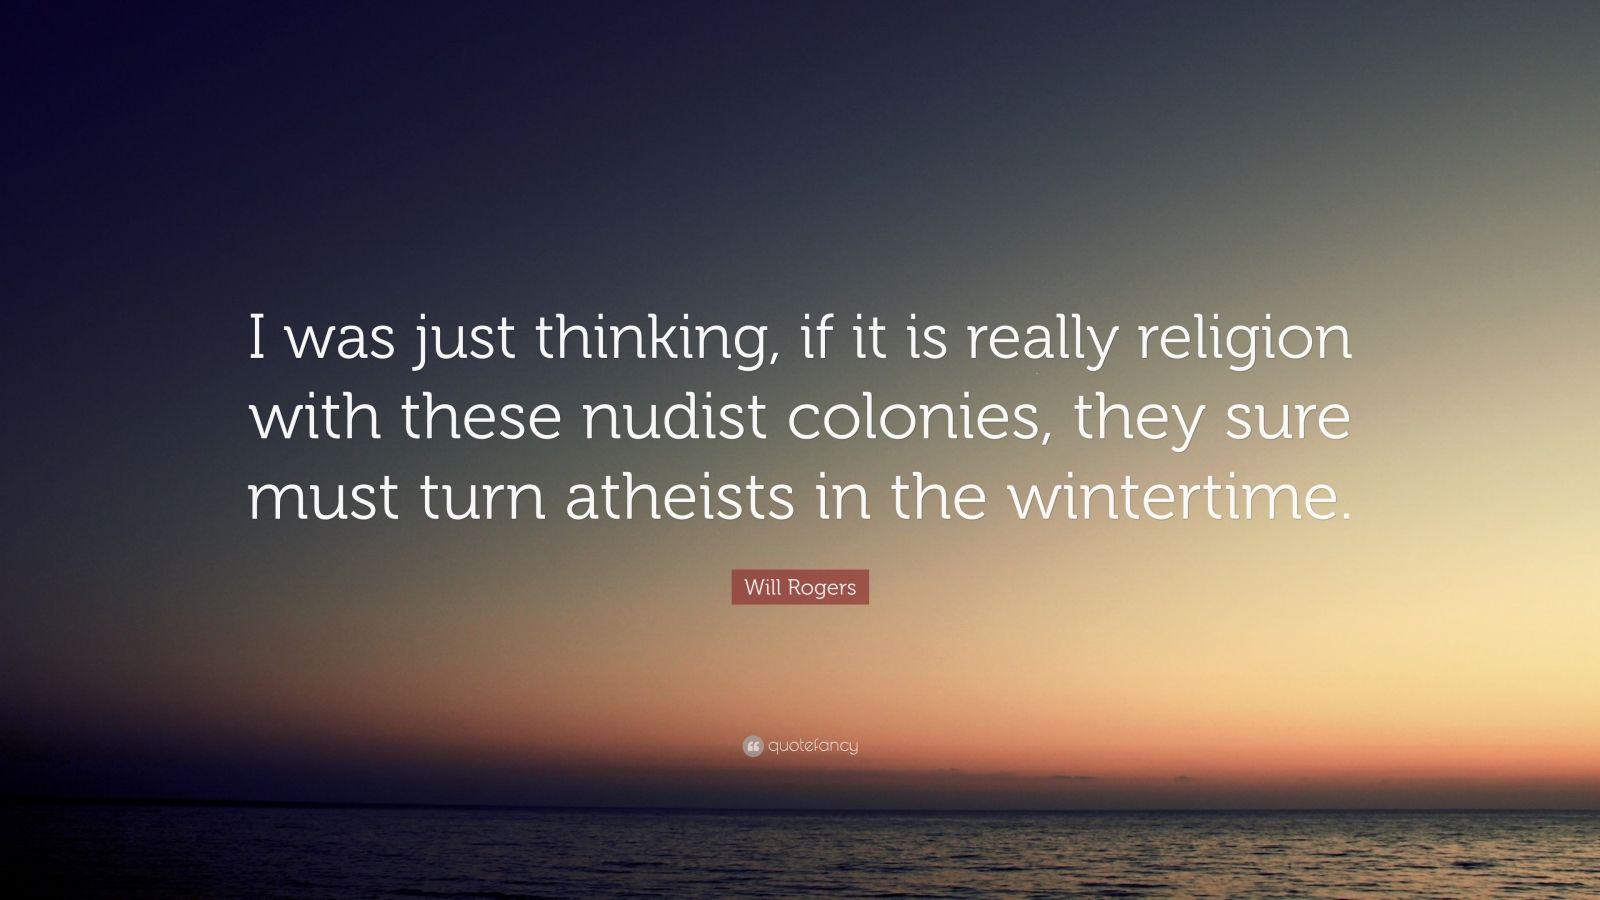 """Will Rogers Quote: """"I was just thinking, if it is really religion with these nudist colonies, they sure must turn atheists in the wintertime."""""""